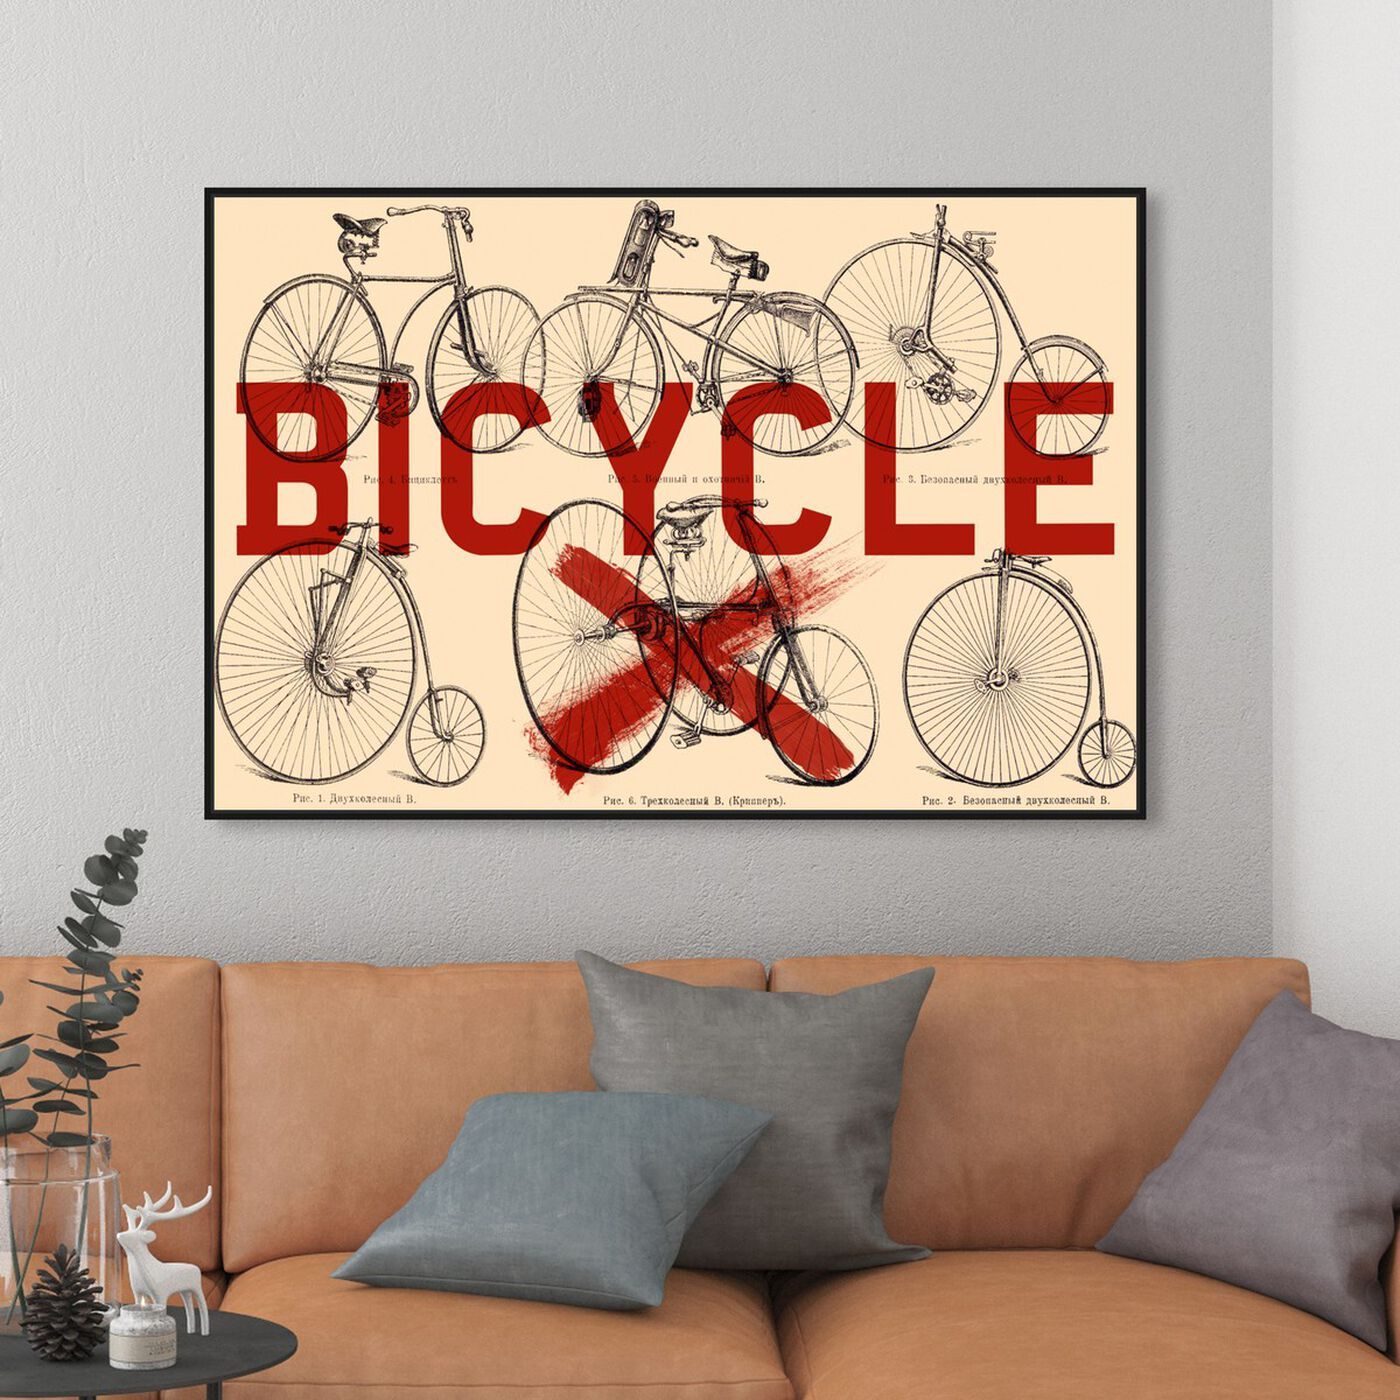 Hanging view of Bicycle featuring transportation and bicycles art.